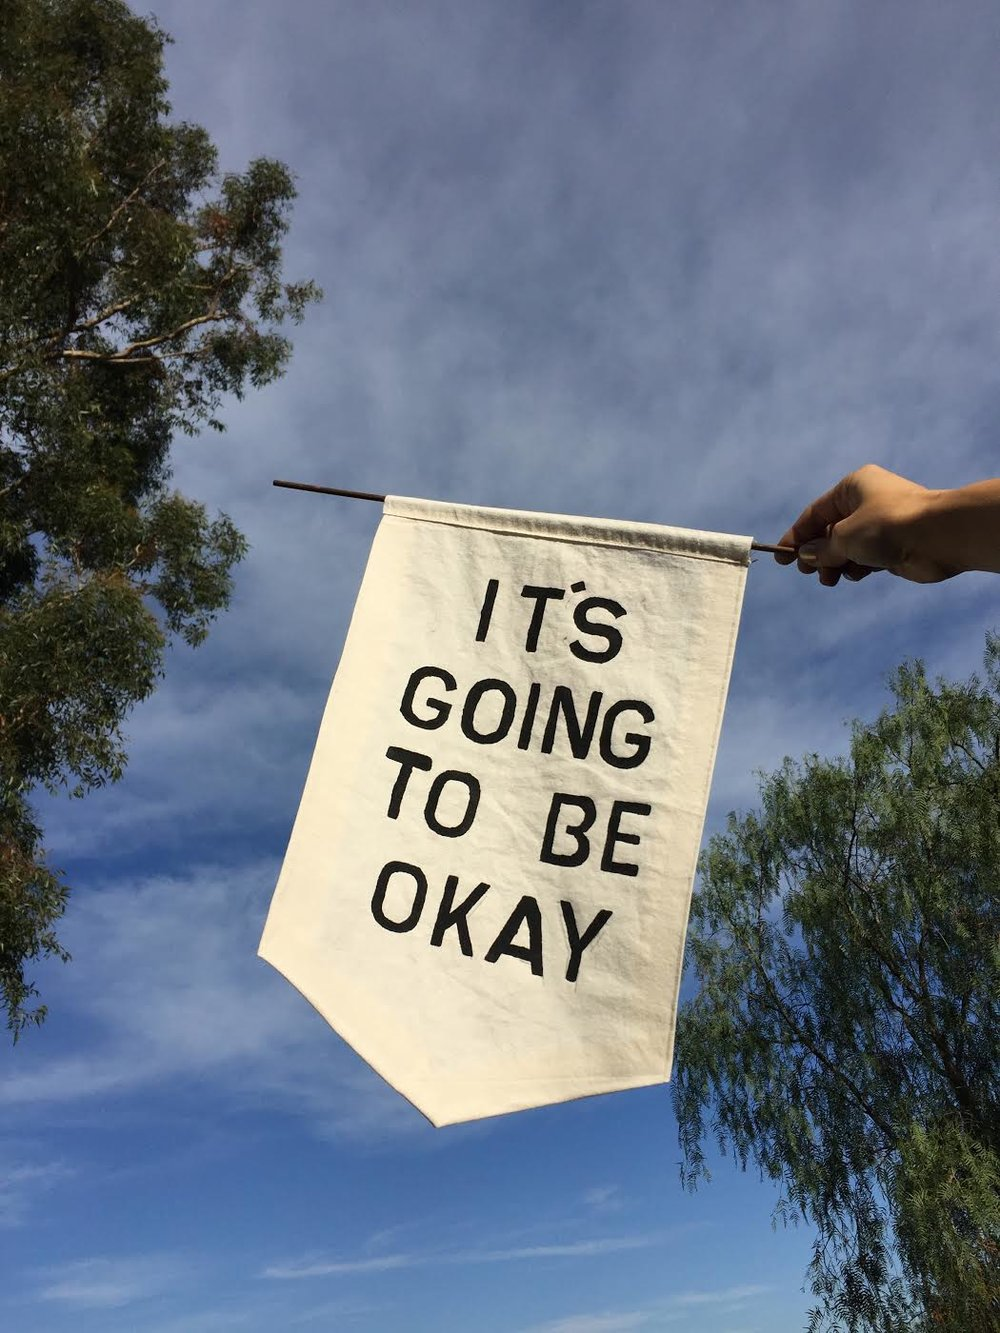 It's going to be ok